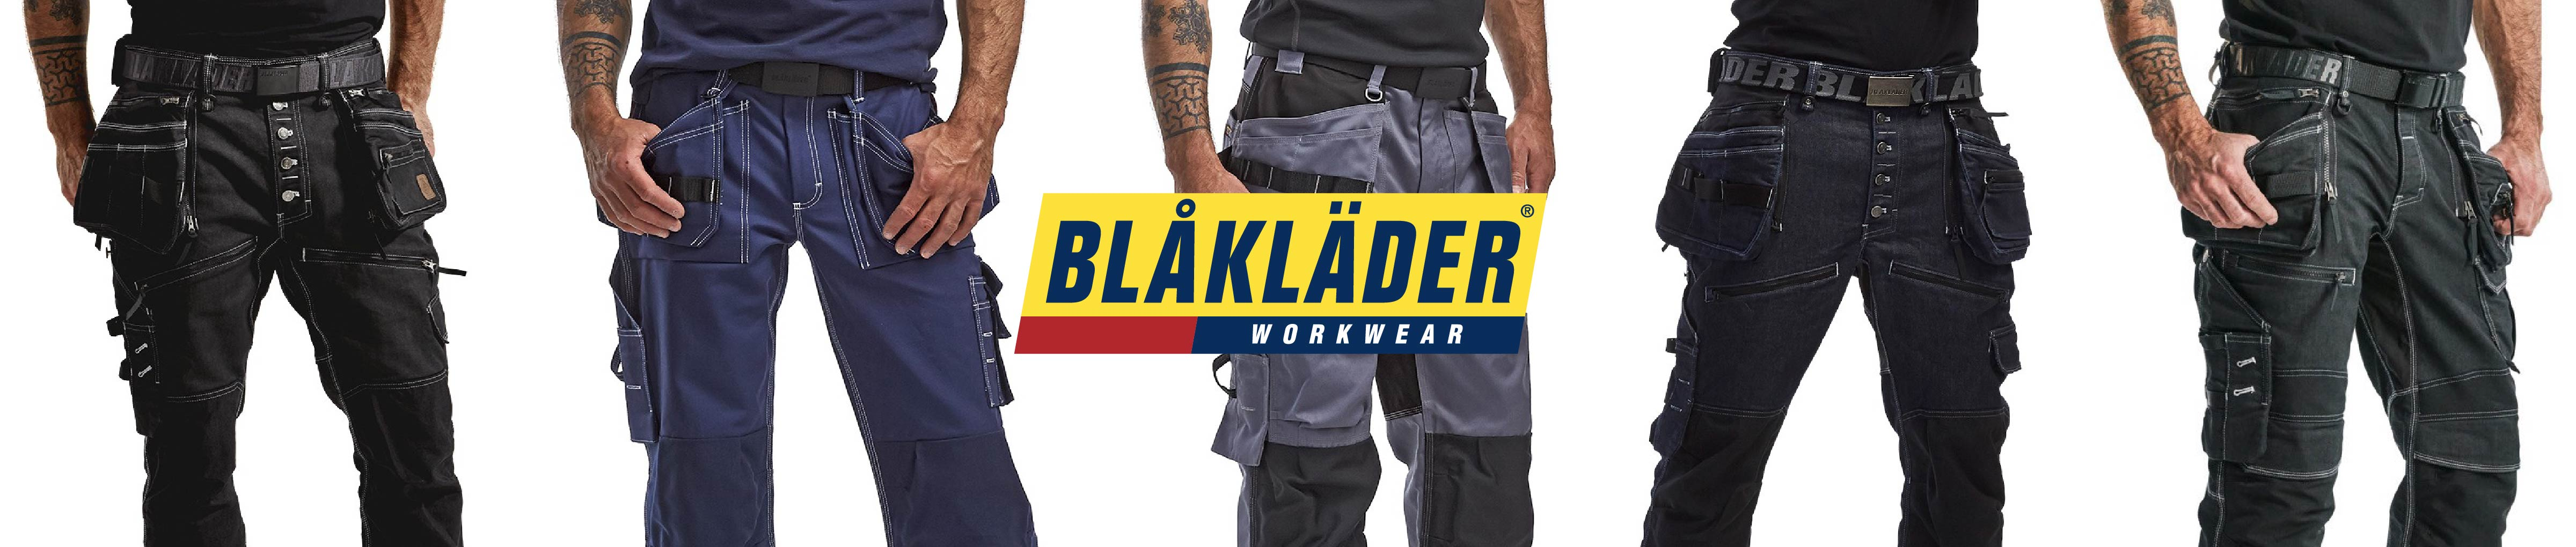 Long work trousers